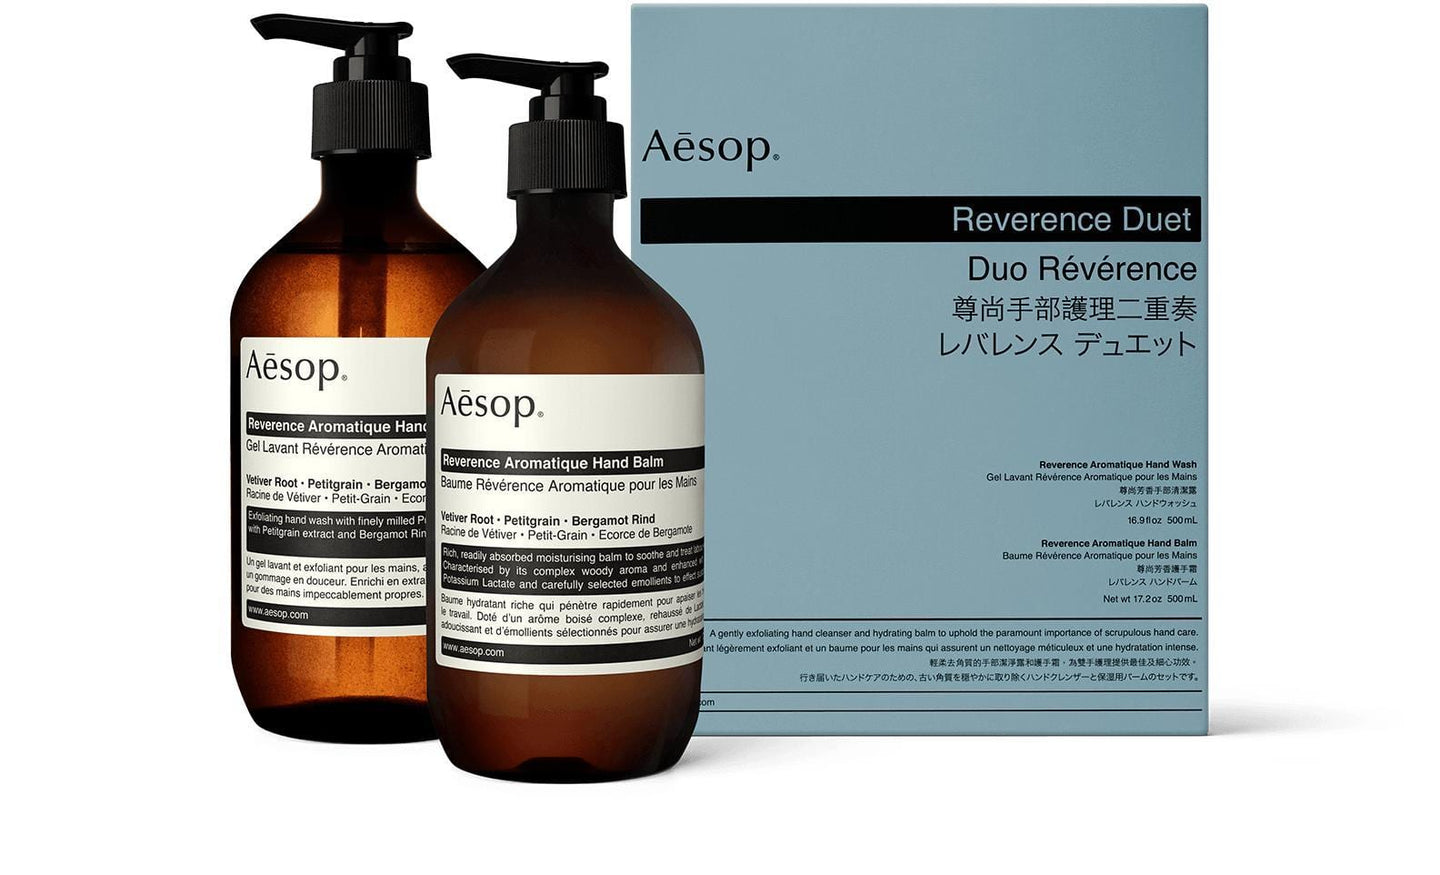 Aesop Reverence Duet / Neighborhood Goods